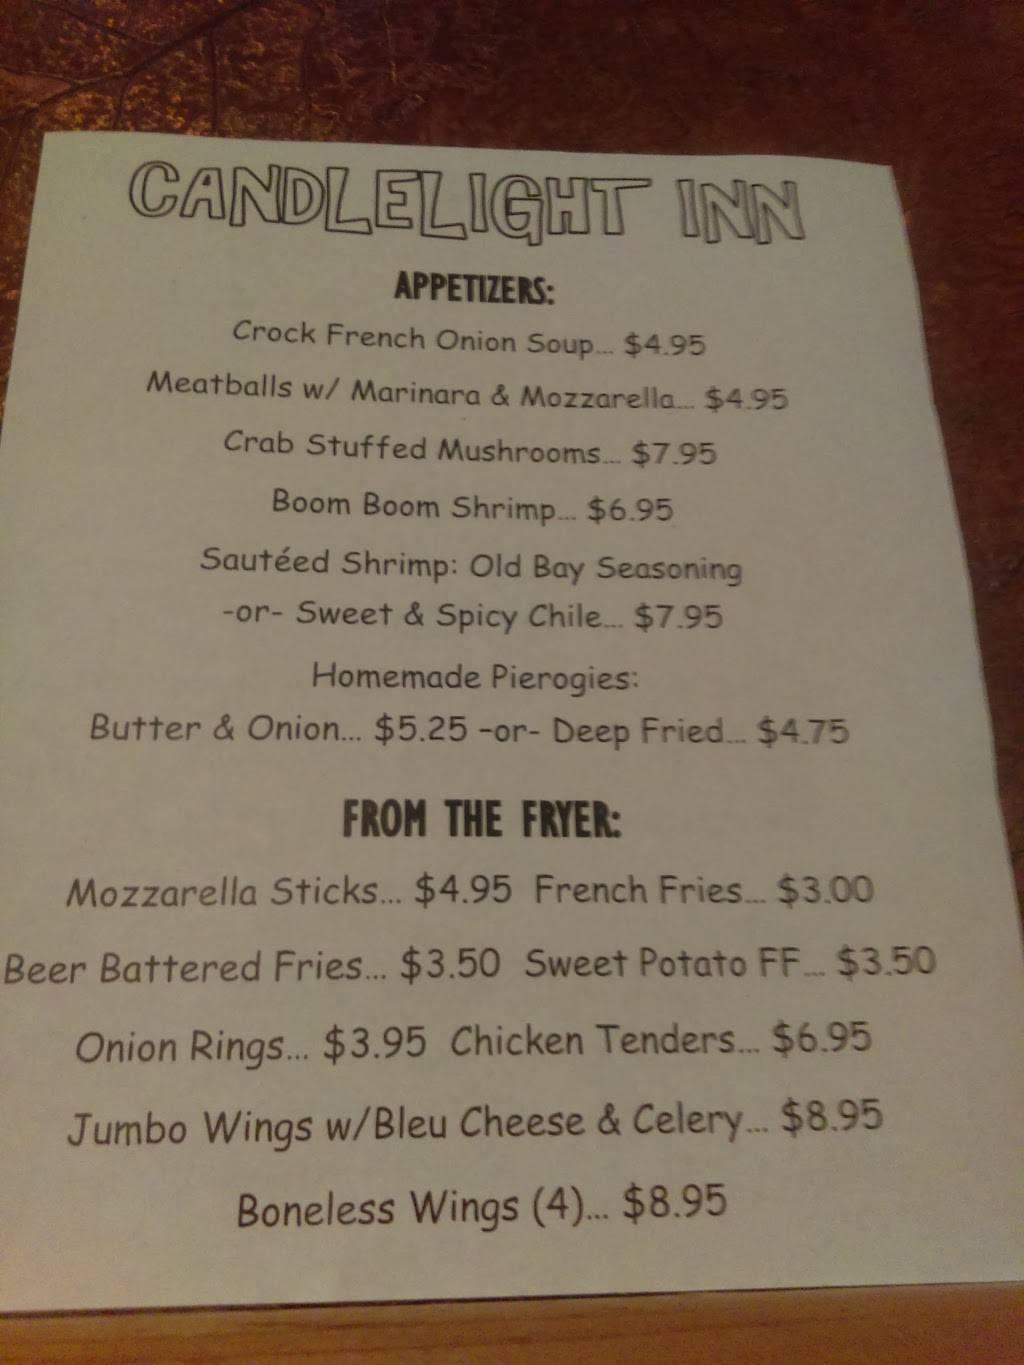 Candlelight Inn & Restaurant | restaurant | PA-374, Union Dale, PA 18470, USA | 5706794000 OR +1 570-679-4000